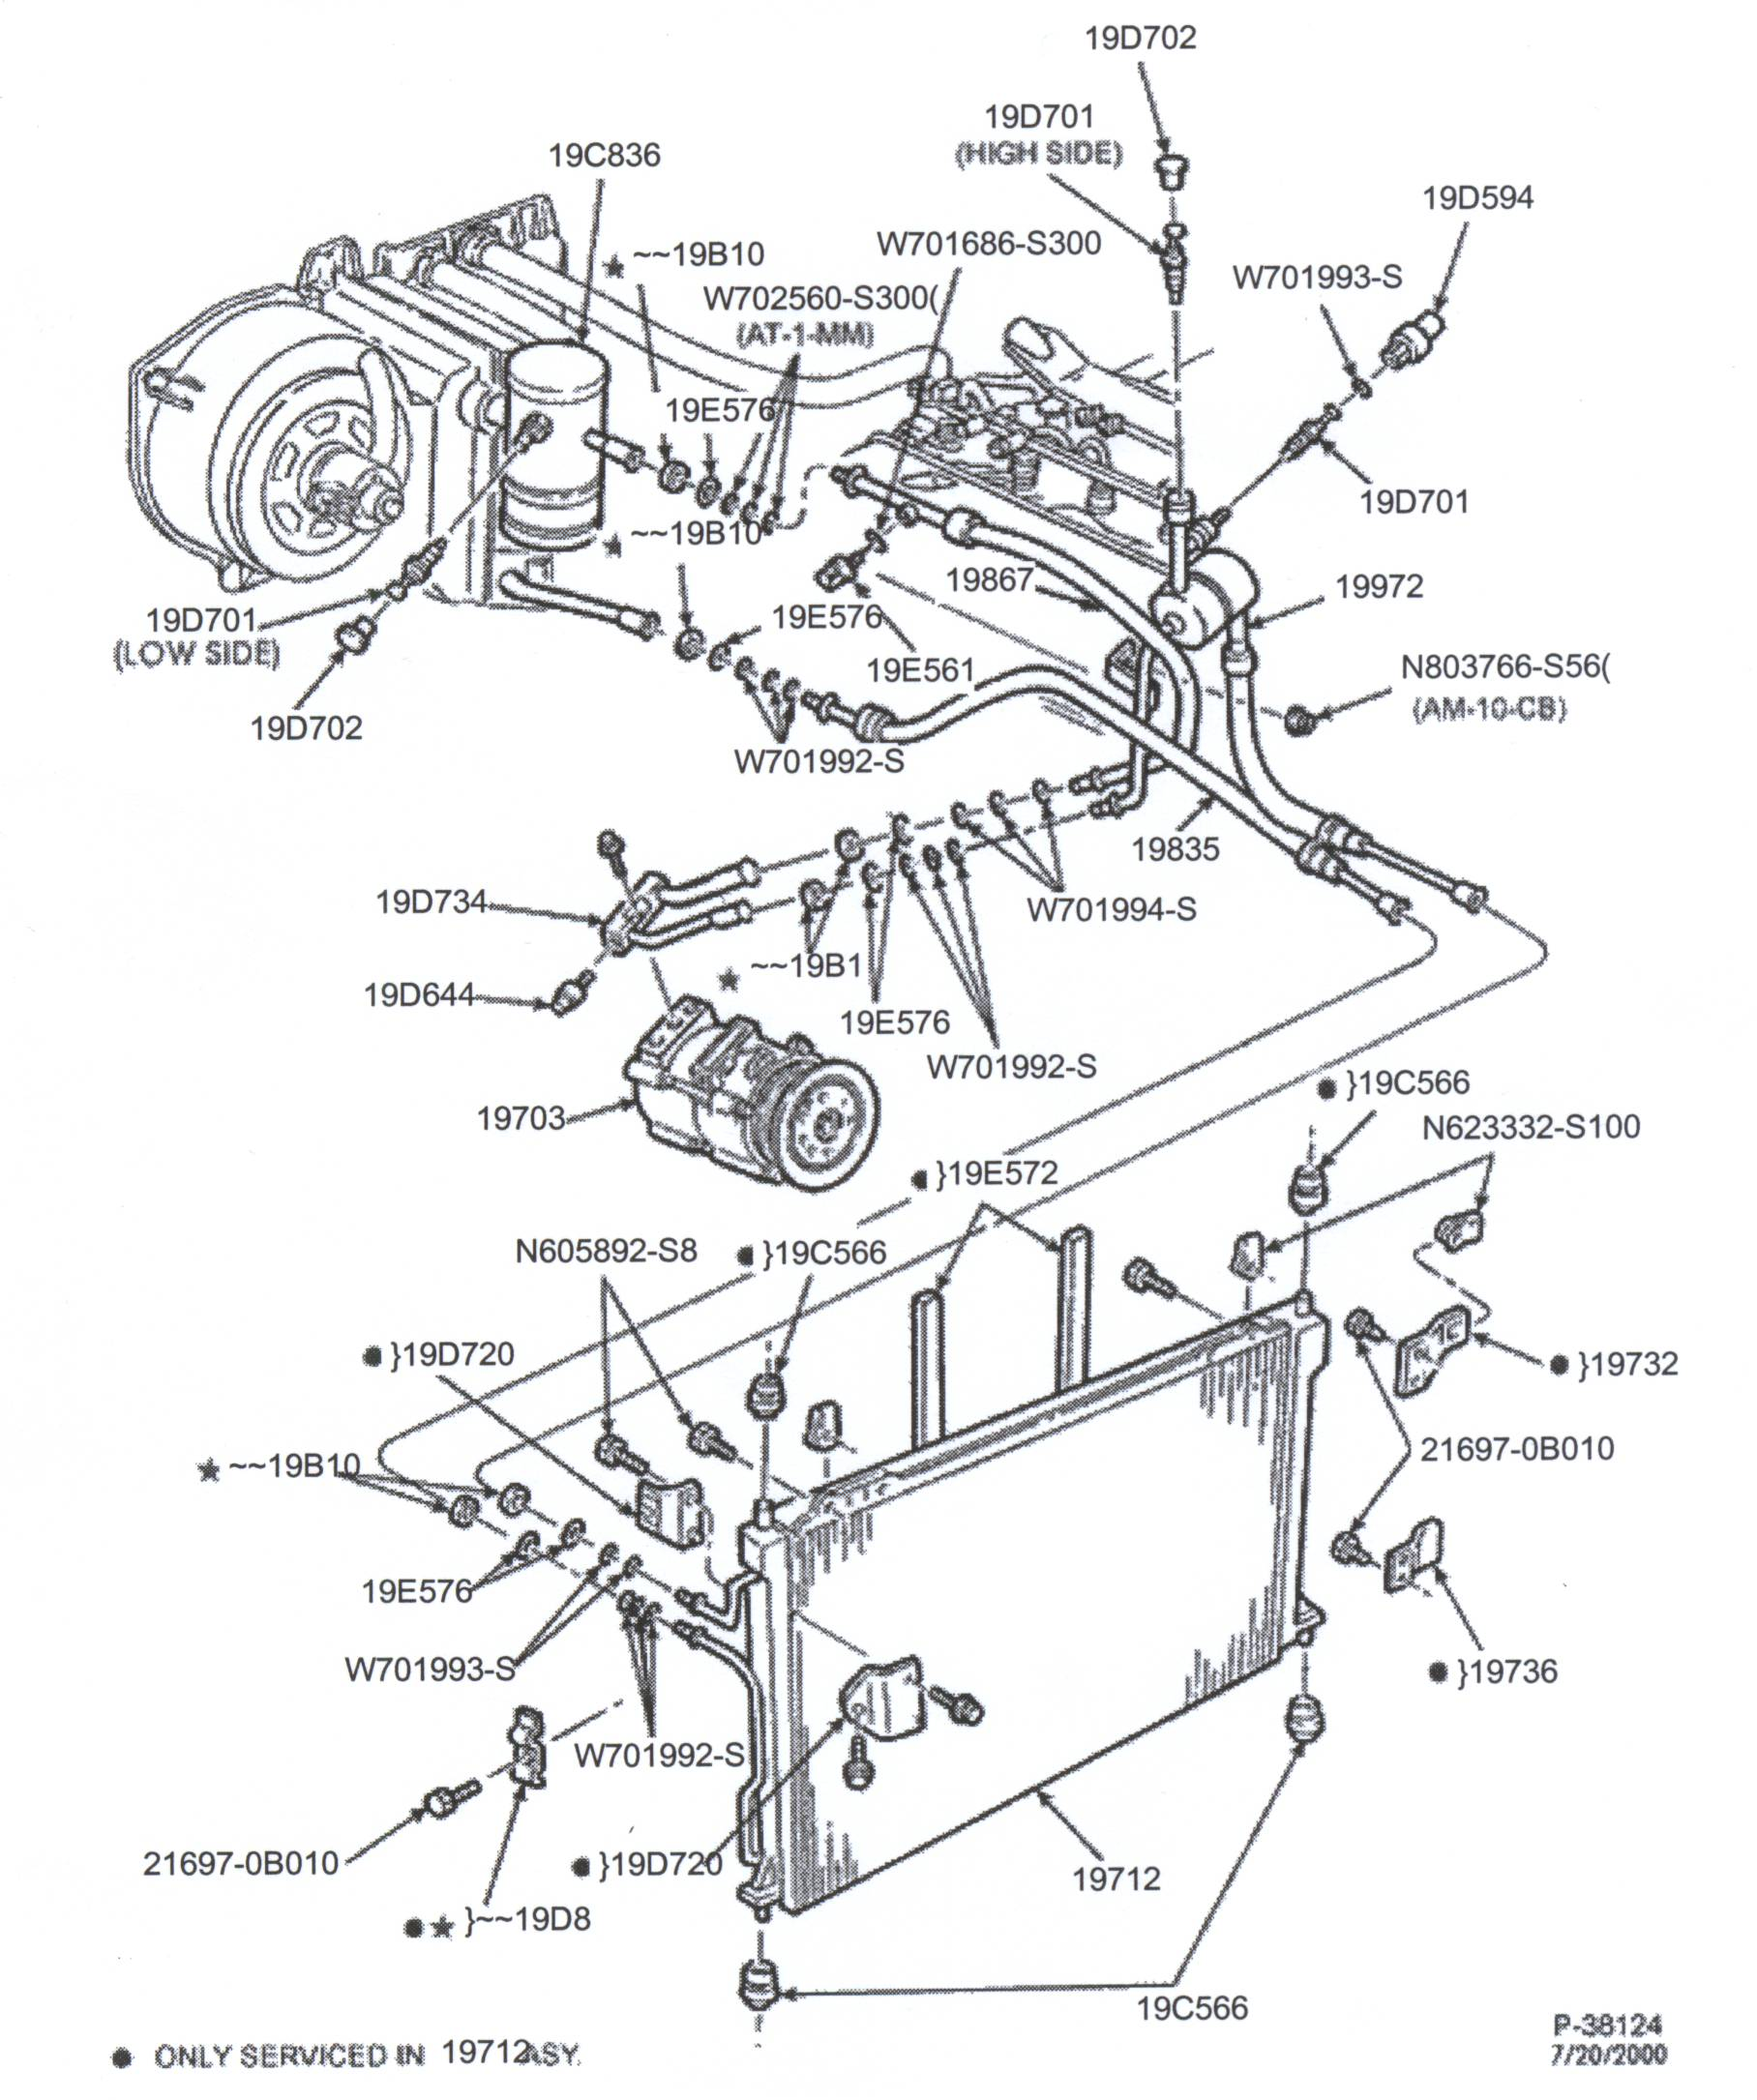 Wiring Diagram For 2003 Mercury Marqui Eatc